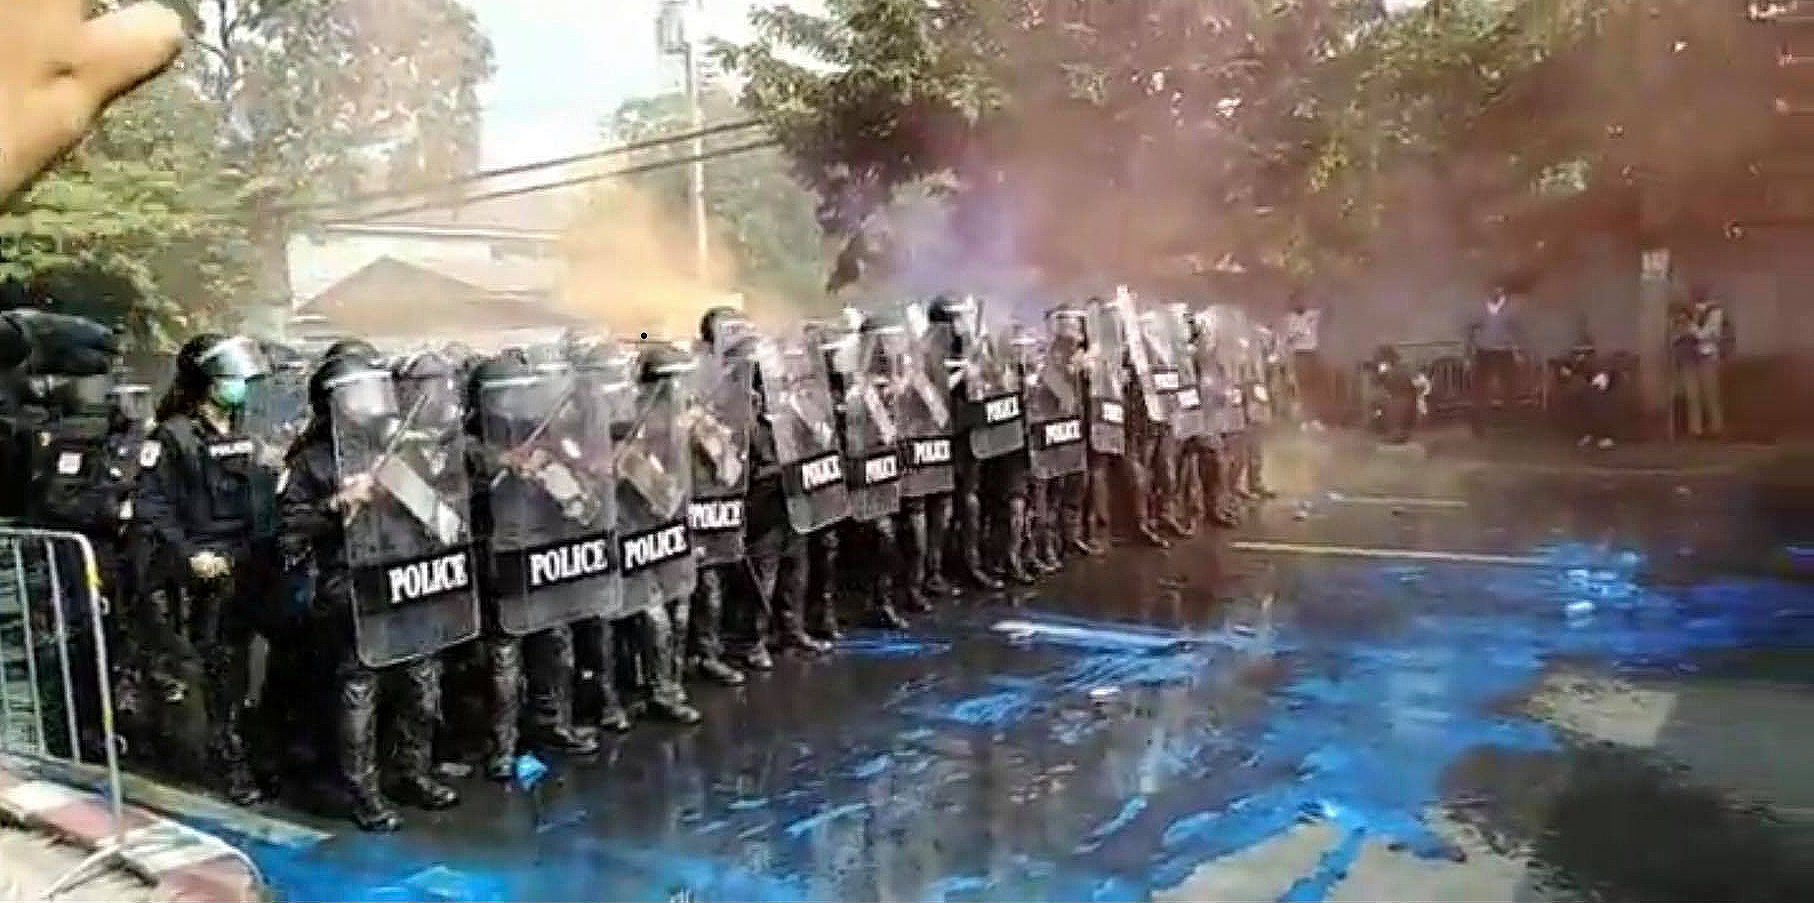 Police deploy water cannons and tear gas, Royalists throw bricks - the protests outside parliament | News by Thaiger